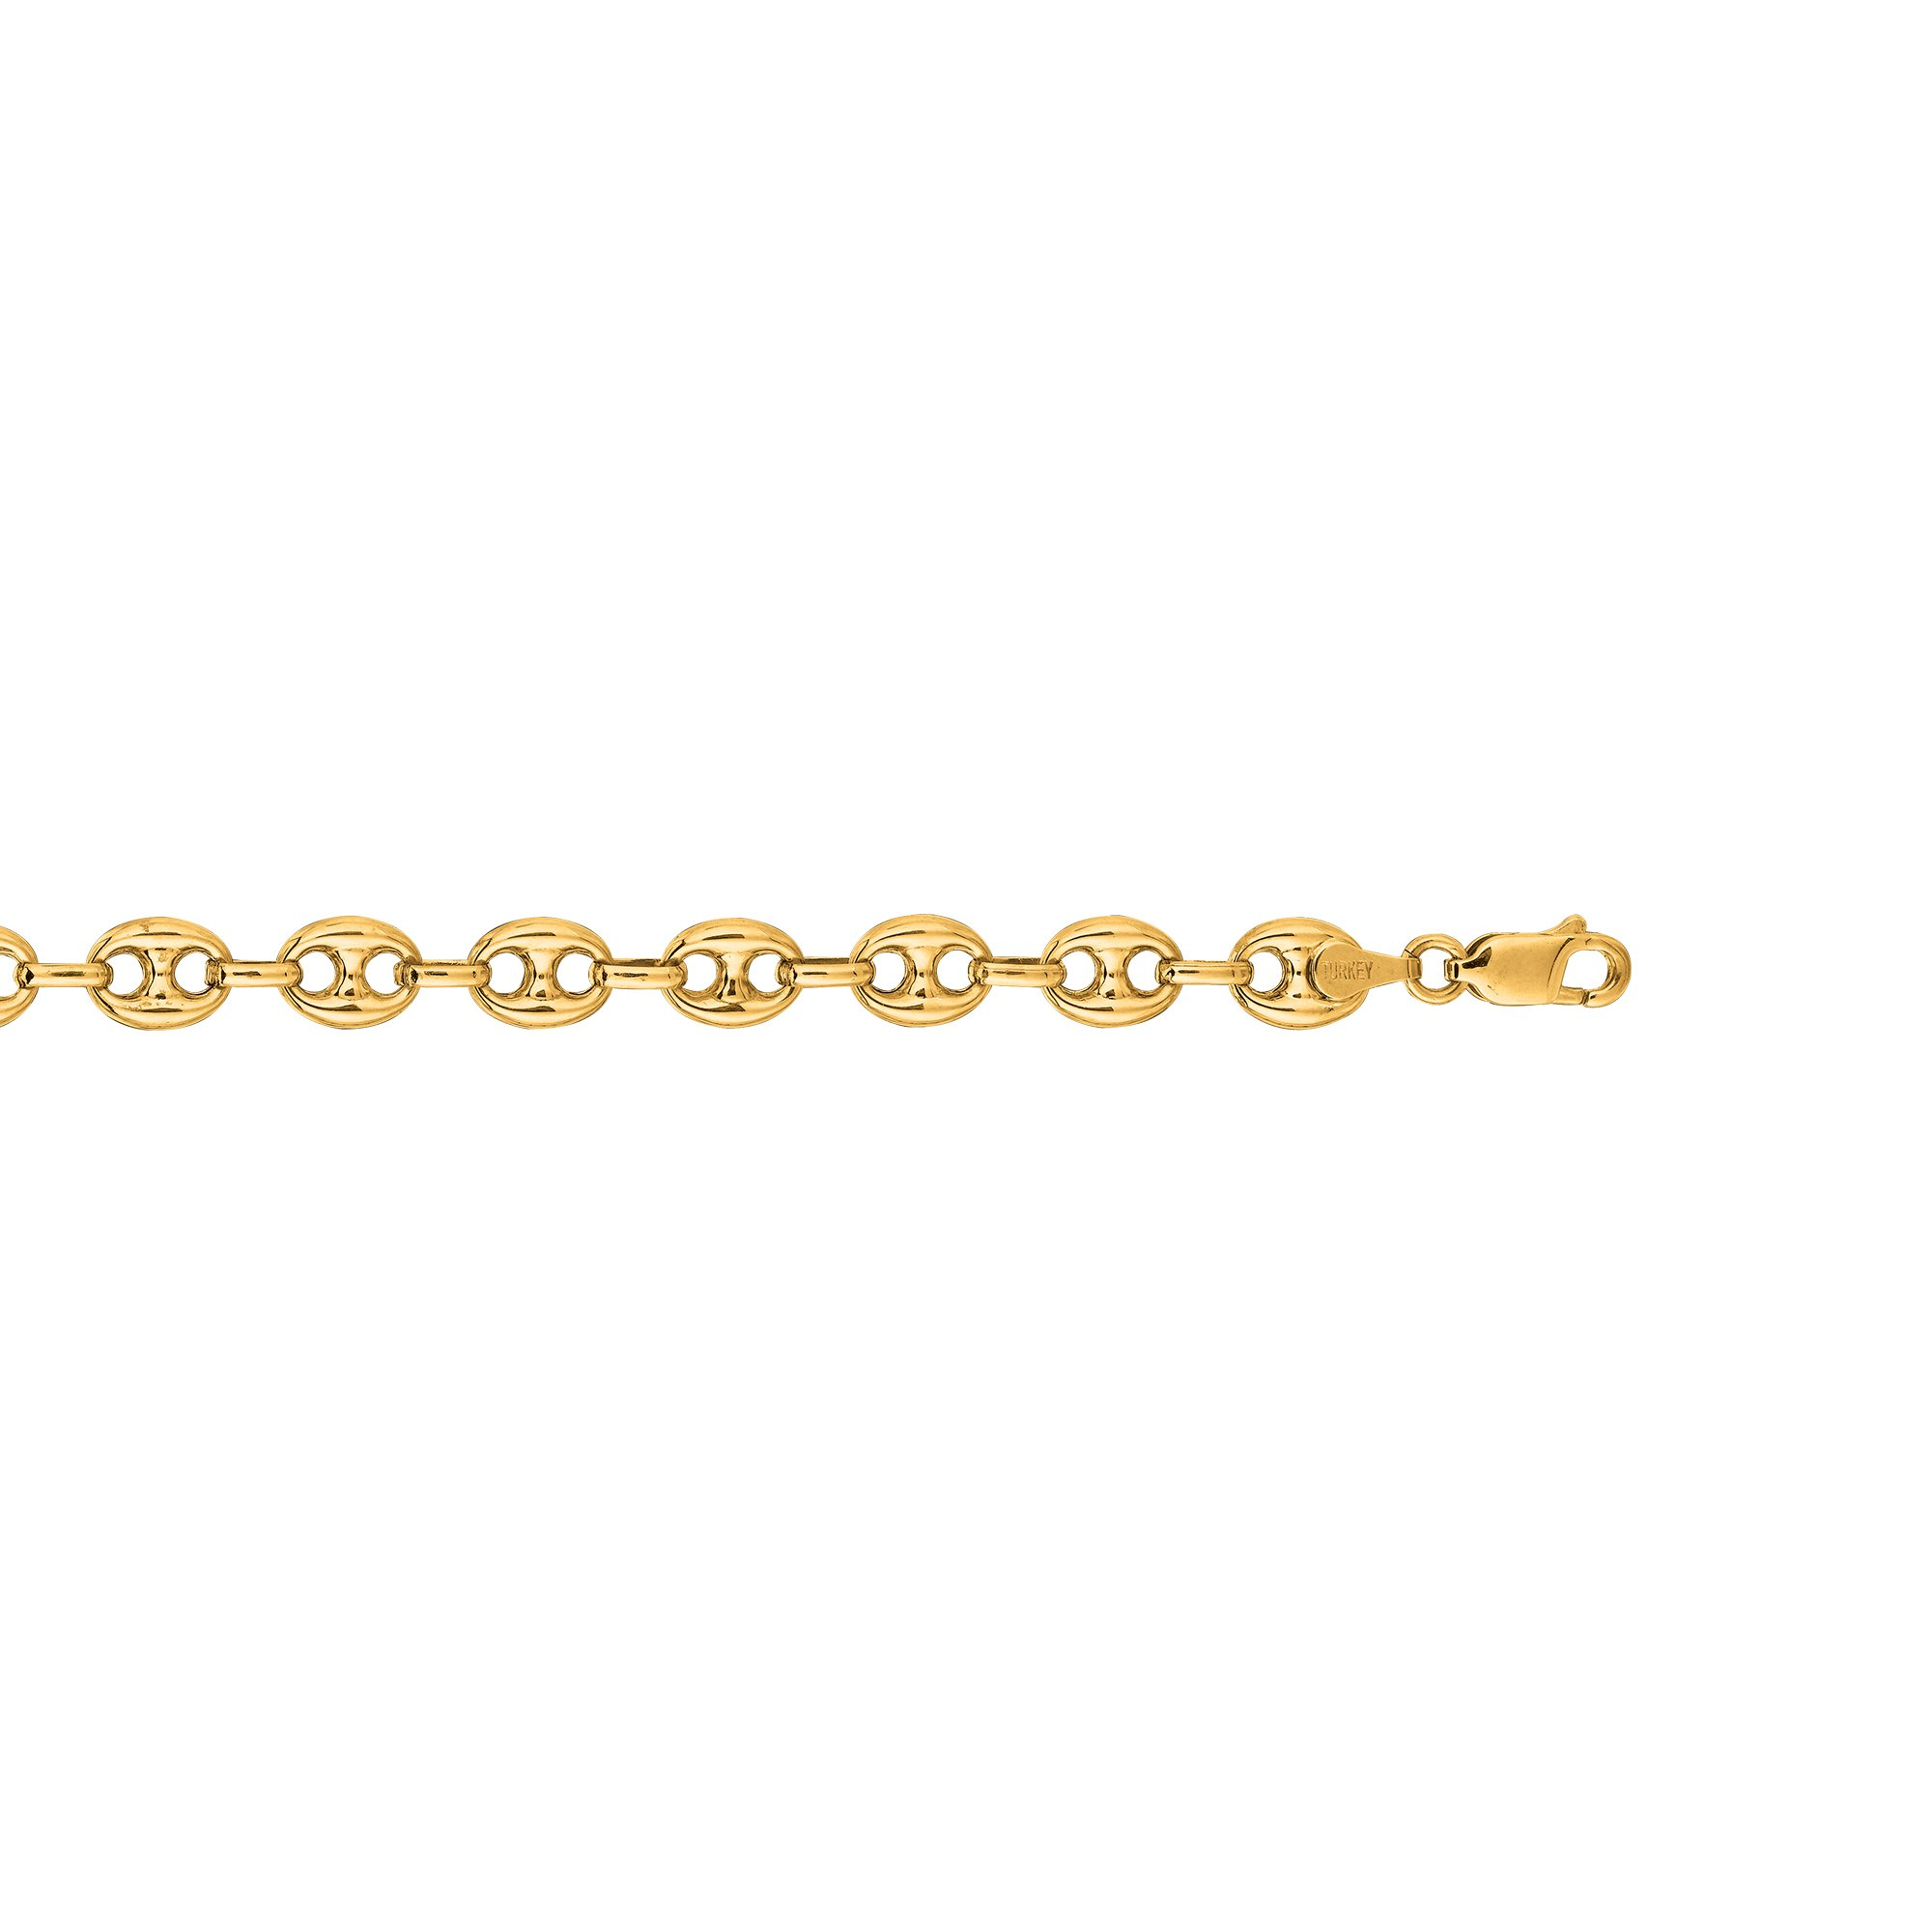 IcedTime 14K Yellow Gold 7mm Diamond Cut Puffed Mariner Link Chain 24'' Necklace Fancy Lobster Clasp